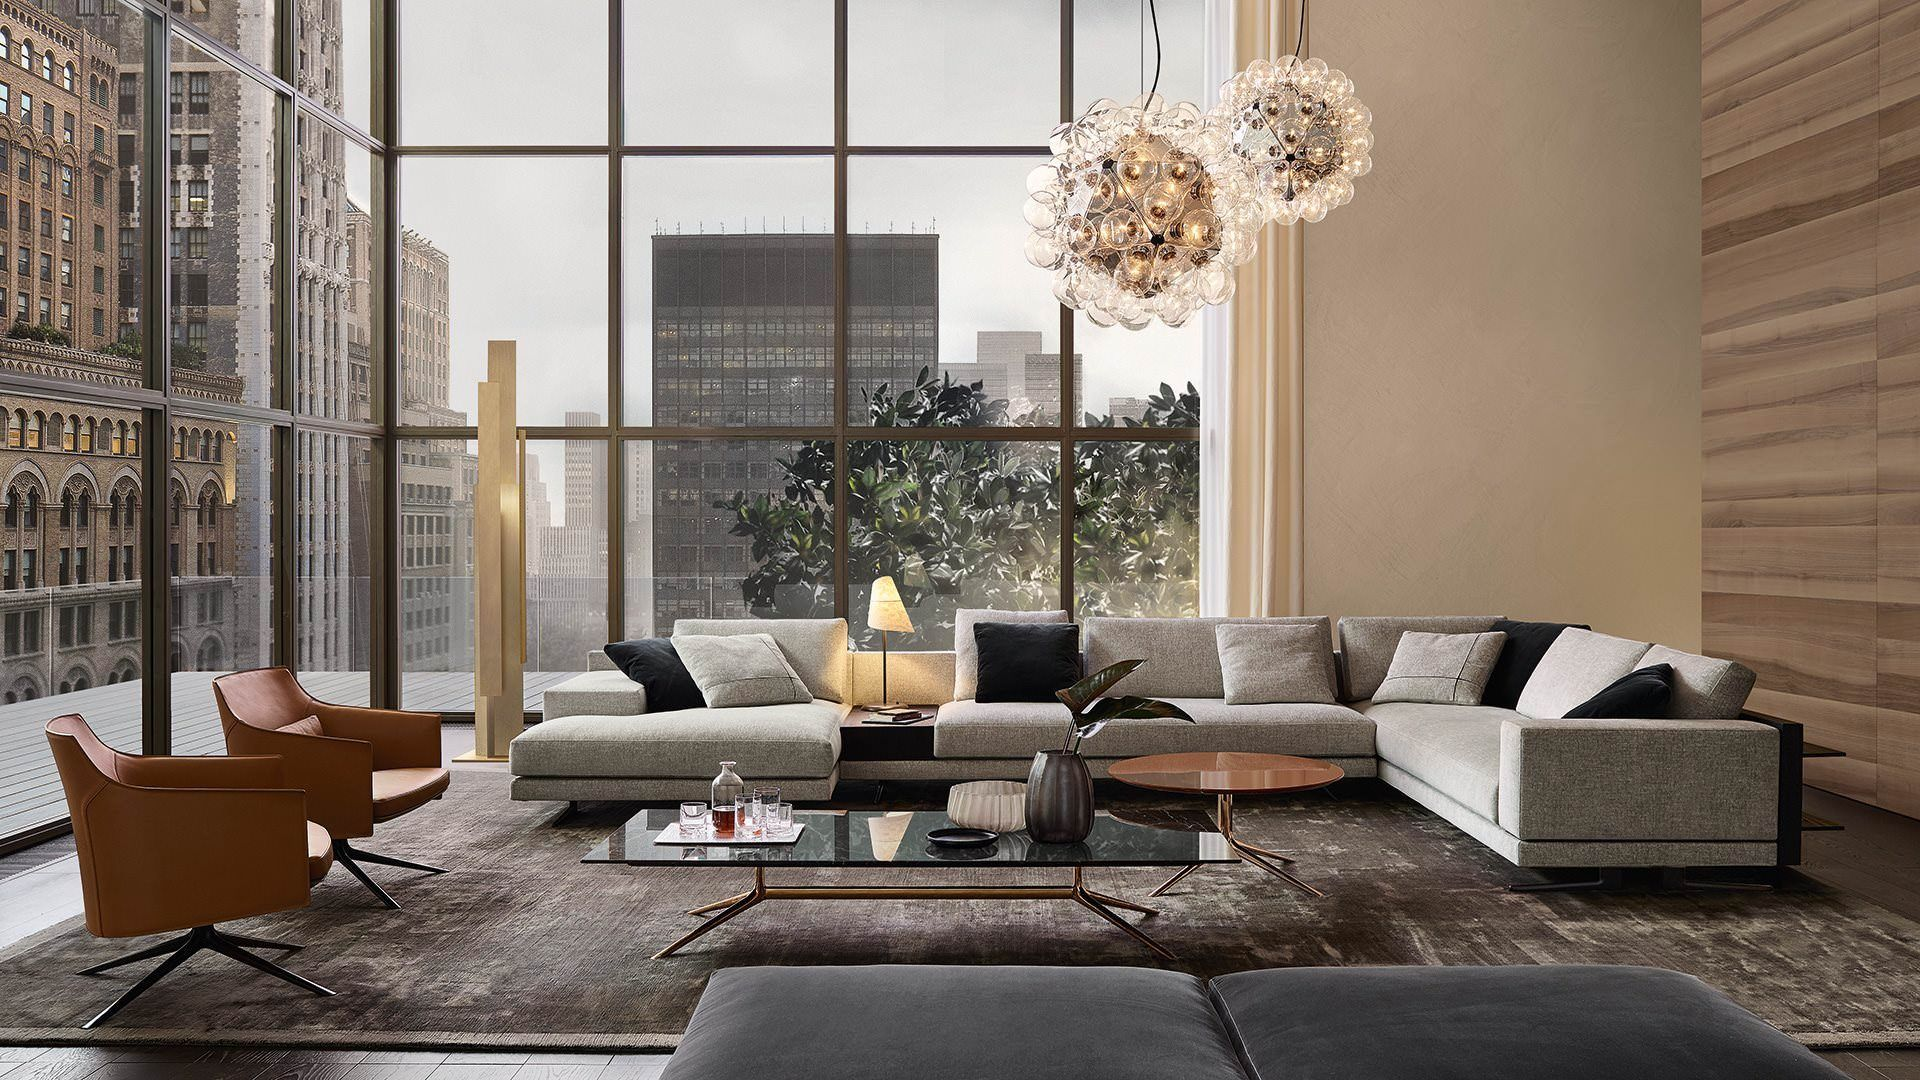 Incredible Modern Living Area Location Unknown 1920x